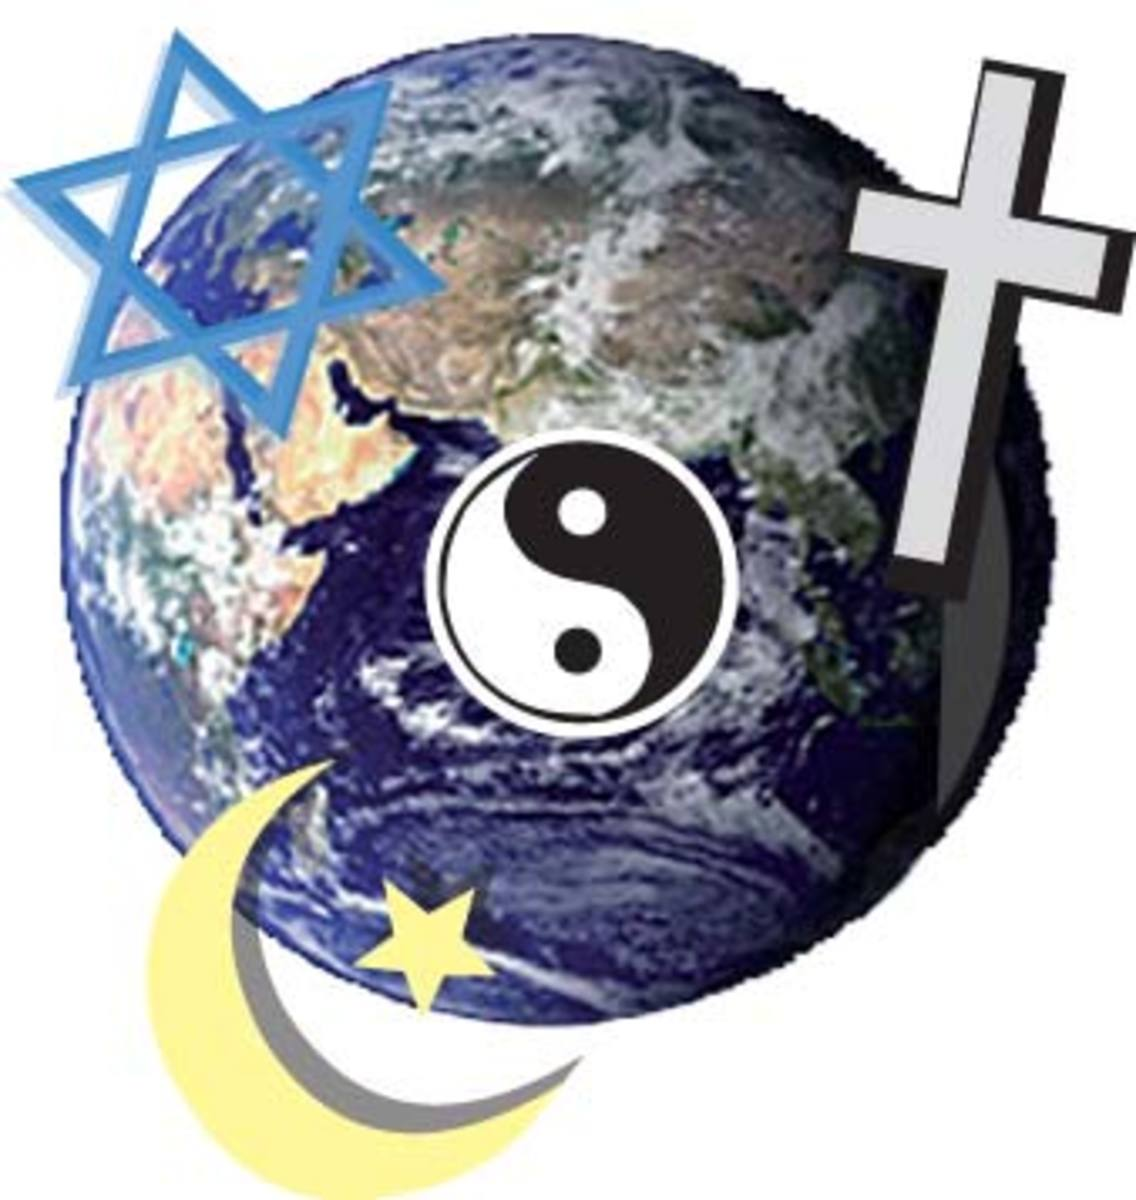 sociological theories on religion 1 1 the sociological perspective on religion r eligion is one of the most powerful, deeply felt, and influential forces in human society it.